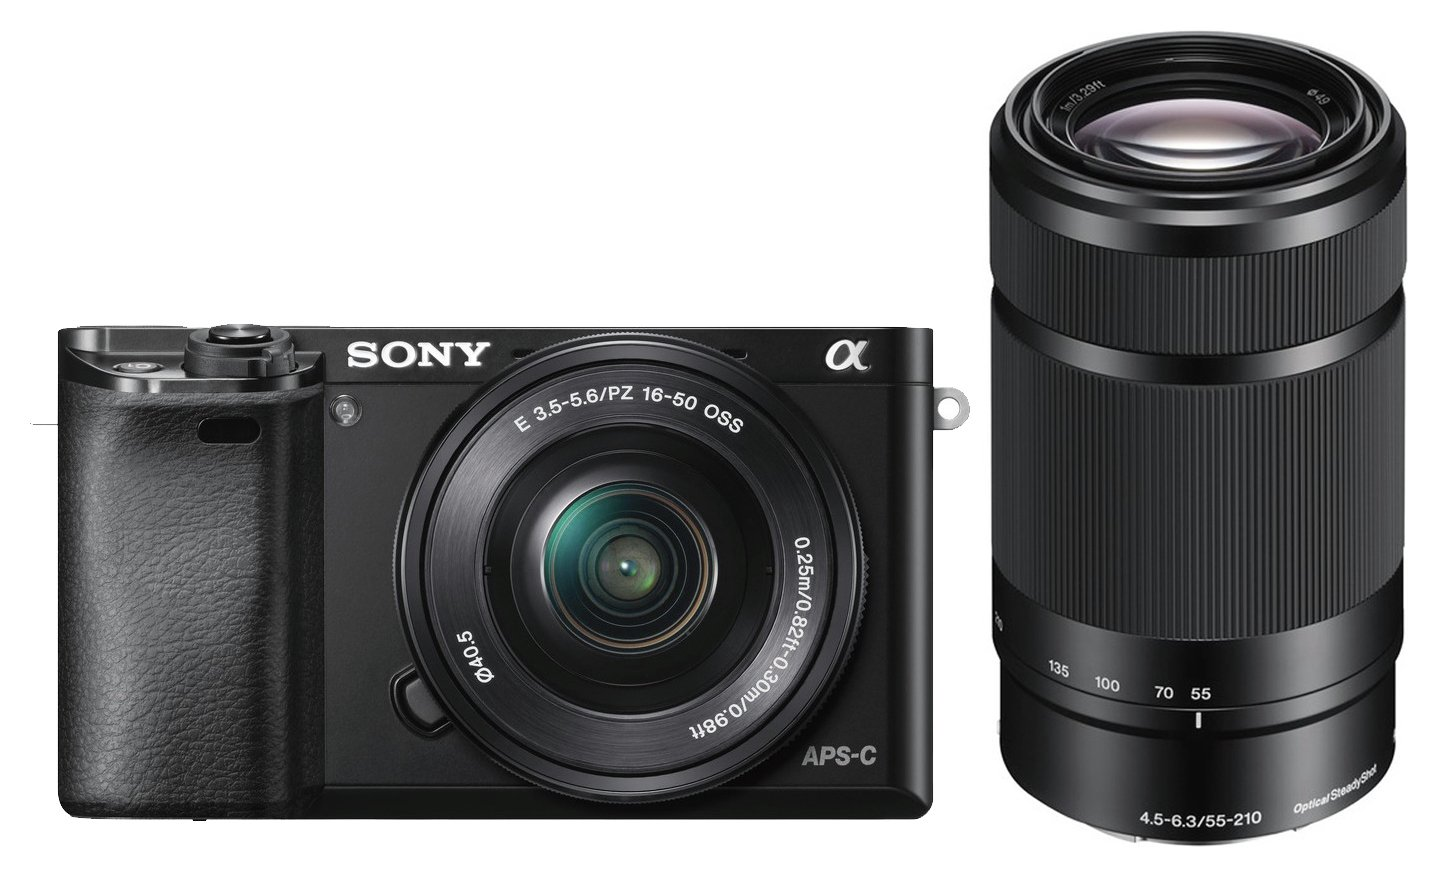 Sony A6000 Mirrorless Camera With 16-50mm & 55-210mm Lenses from Sony